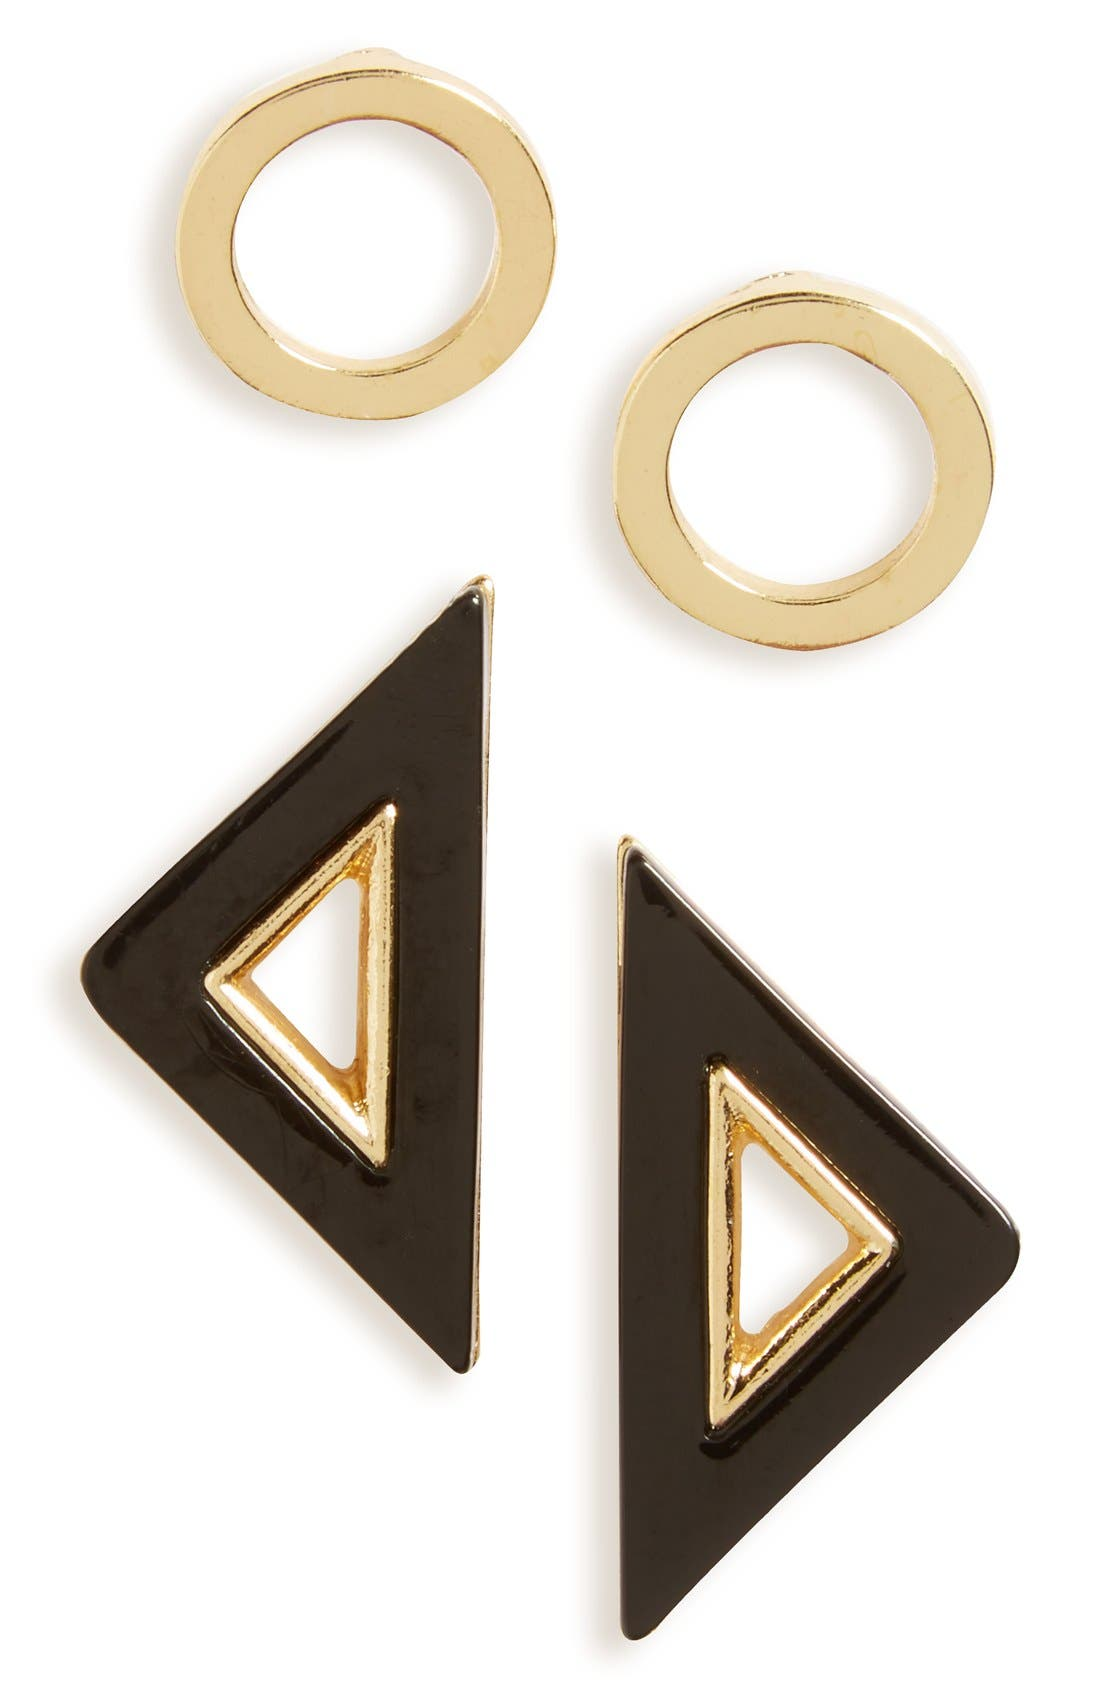 Alternate Image 1 Selected - Topshop Circle & Triangle Stud Earrings (Set of 2)